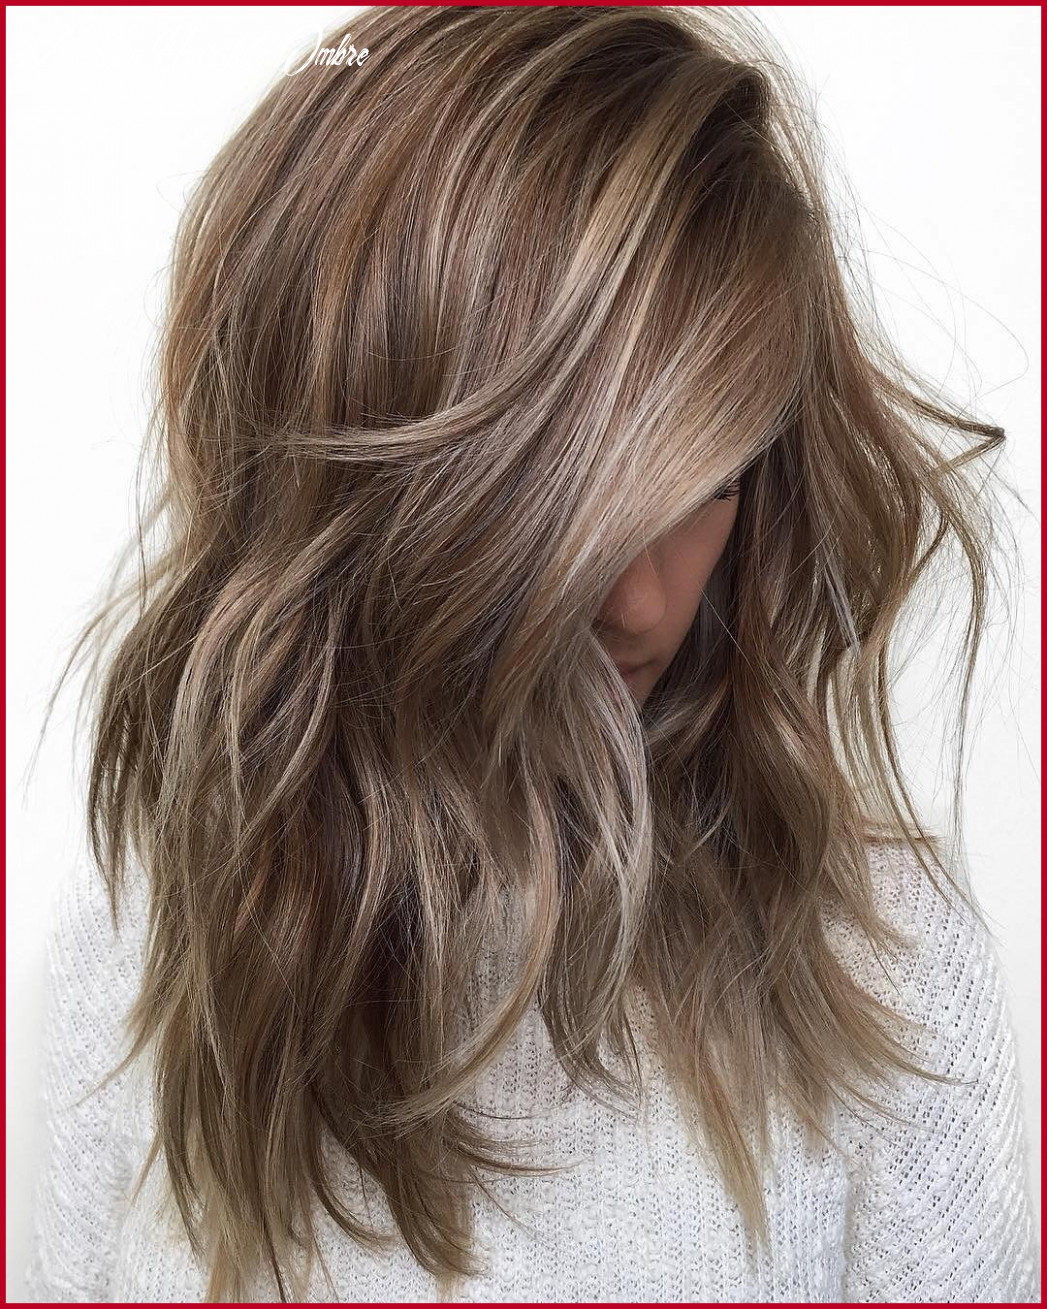 Ombre Hairstyles for Medium Length Hair 11 11 Balayage Ombre ...